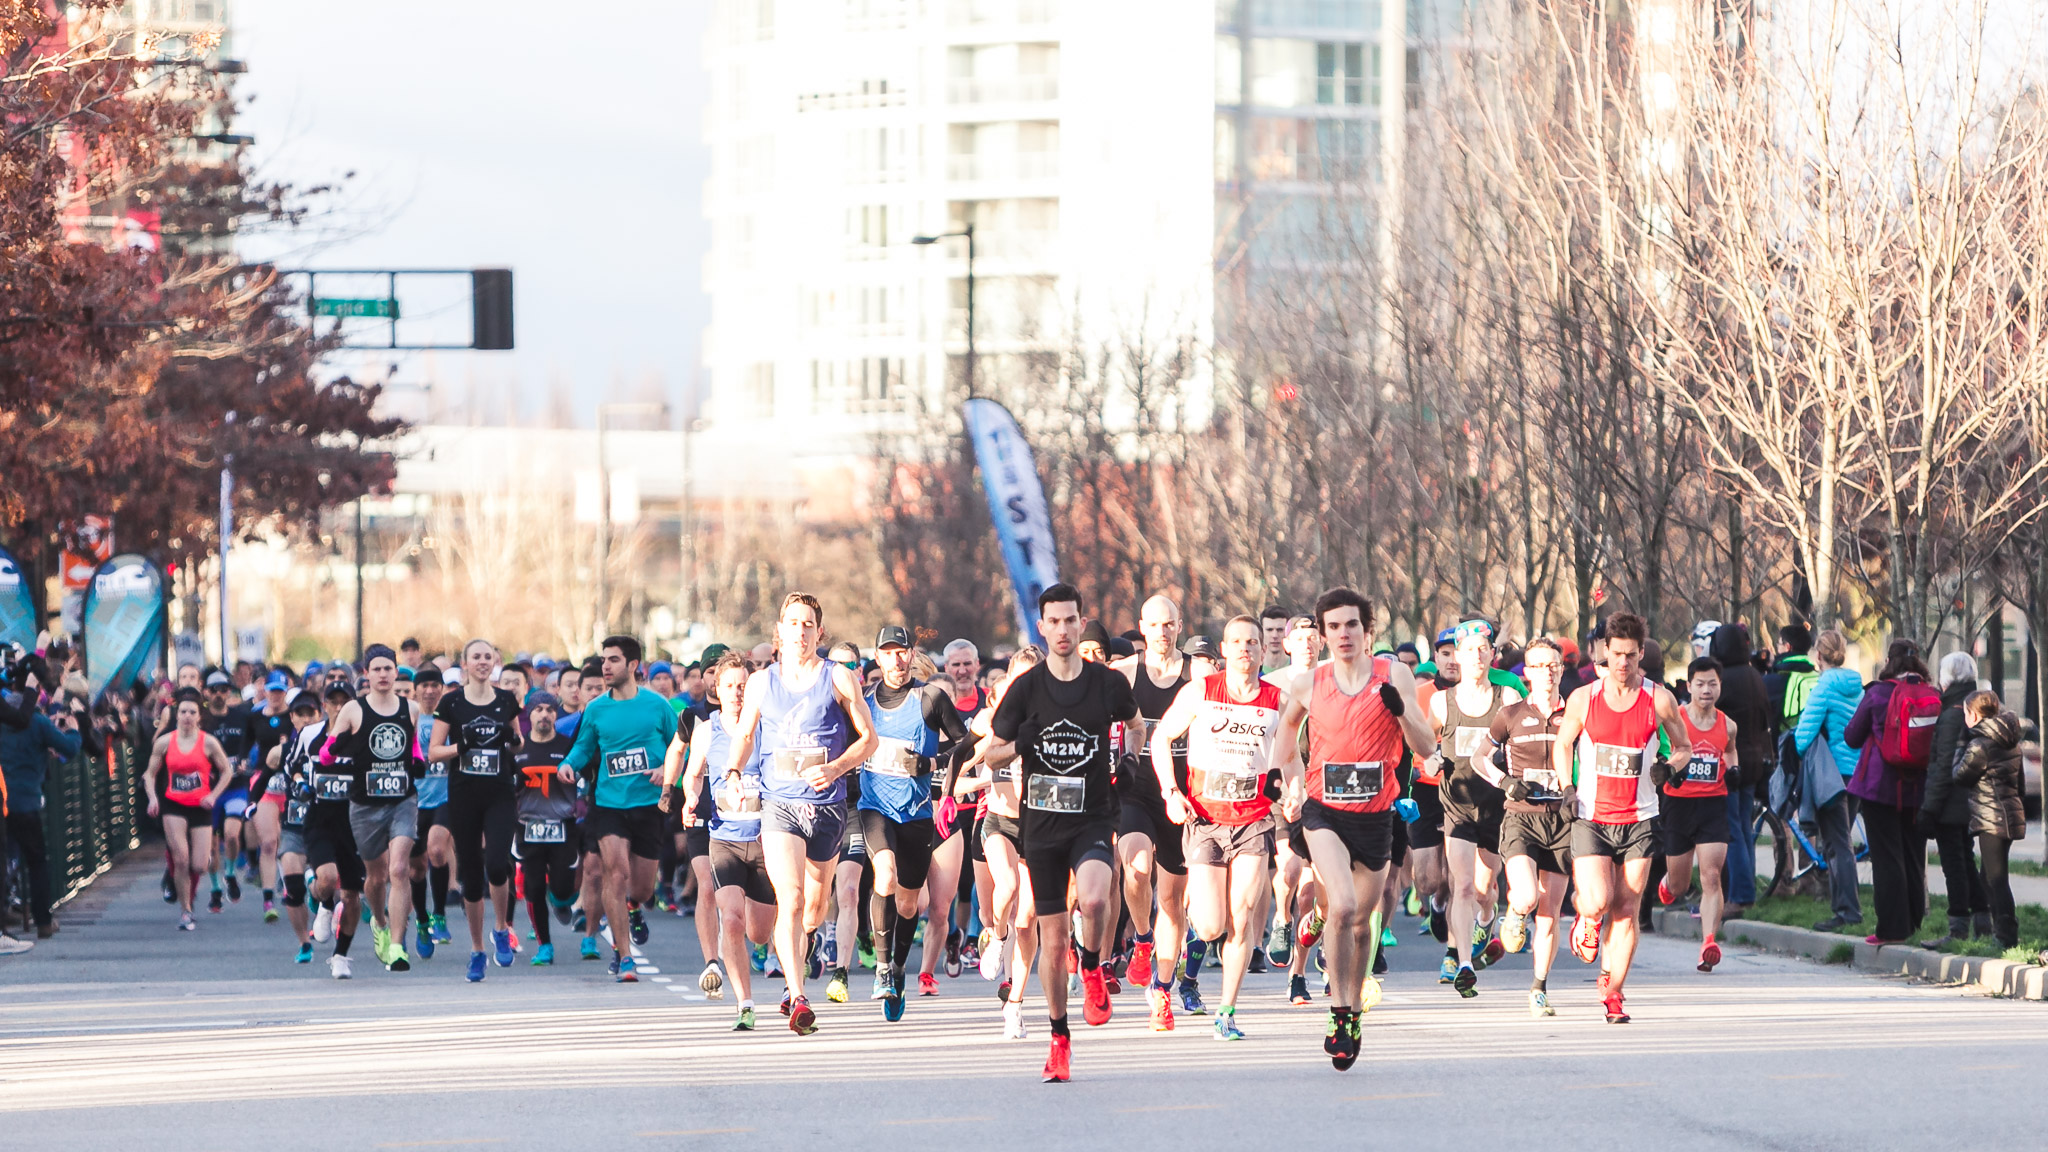 RUNVAN® adds 'First Half' Half Marathon from Pacific Road Runners